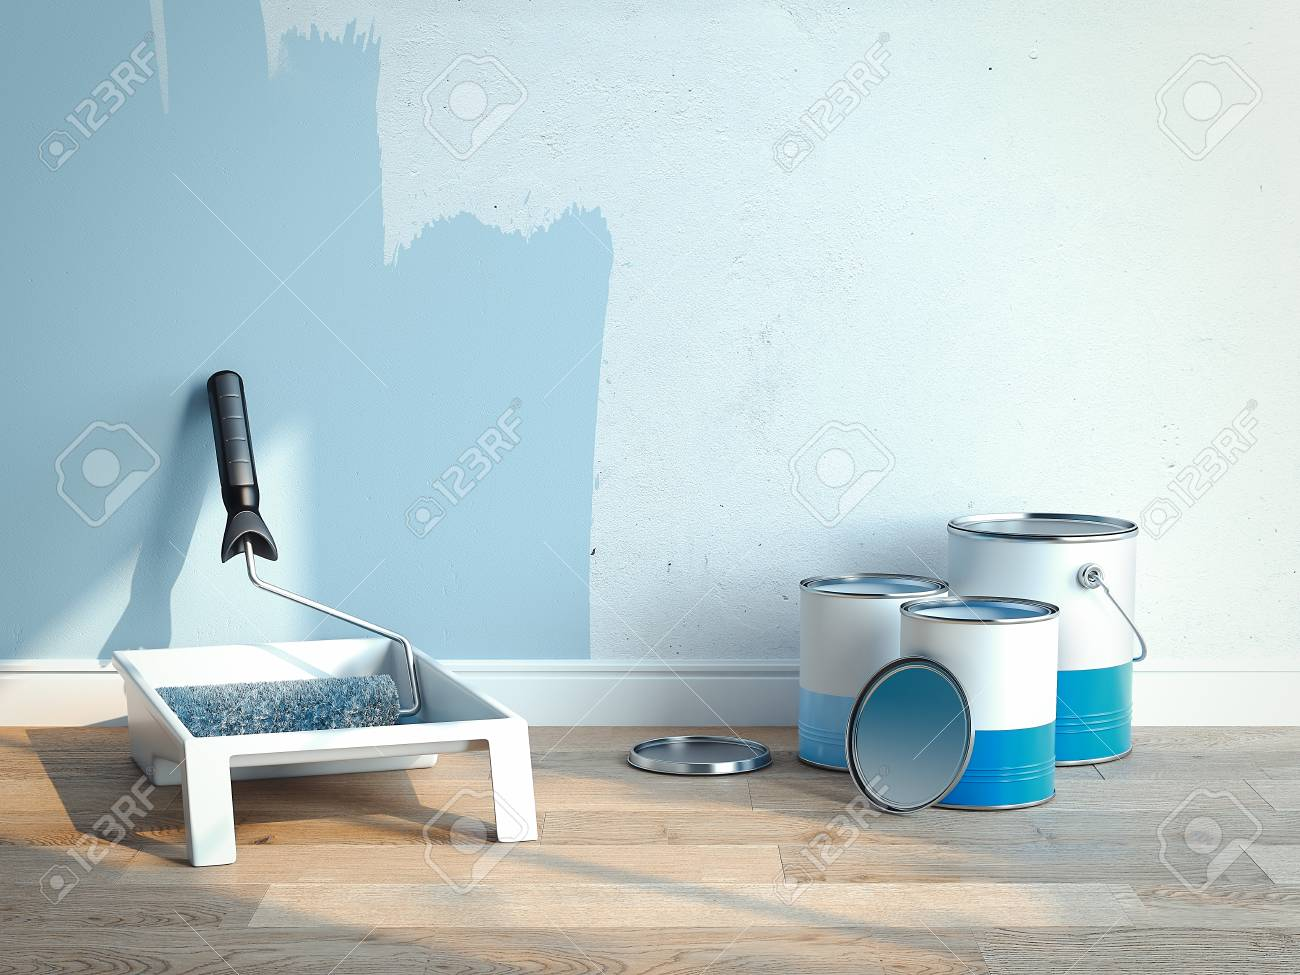 Paint cans near light blue walls, 2 cans are opened, 1 is closed, 3d rendering - 106992139